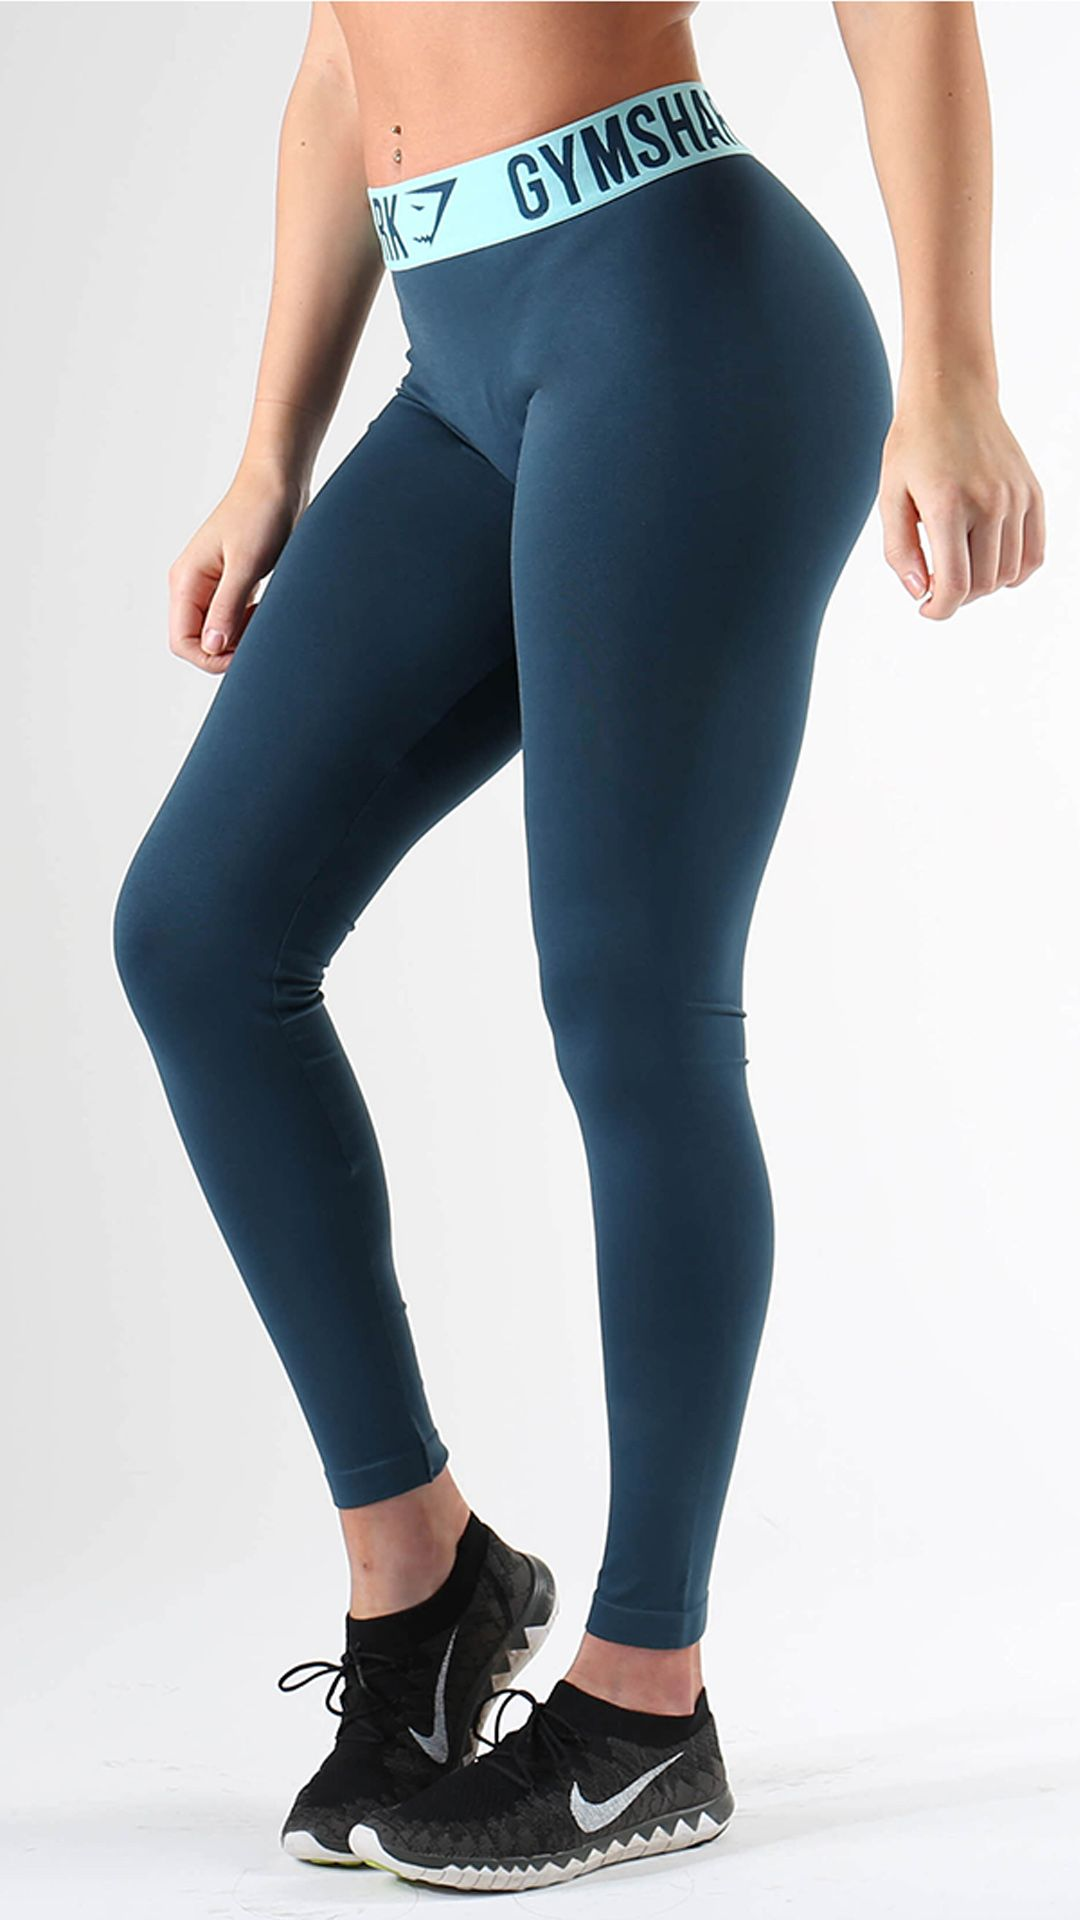 cce3bc0c4ac329 Fit Leggings in Lagoon Blue are form hugging and figure flattering workout  leggings with the famous Gymshark performance waistband